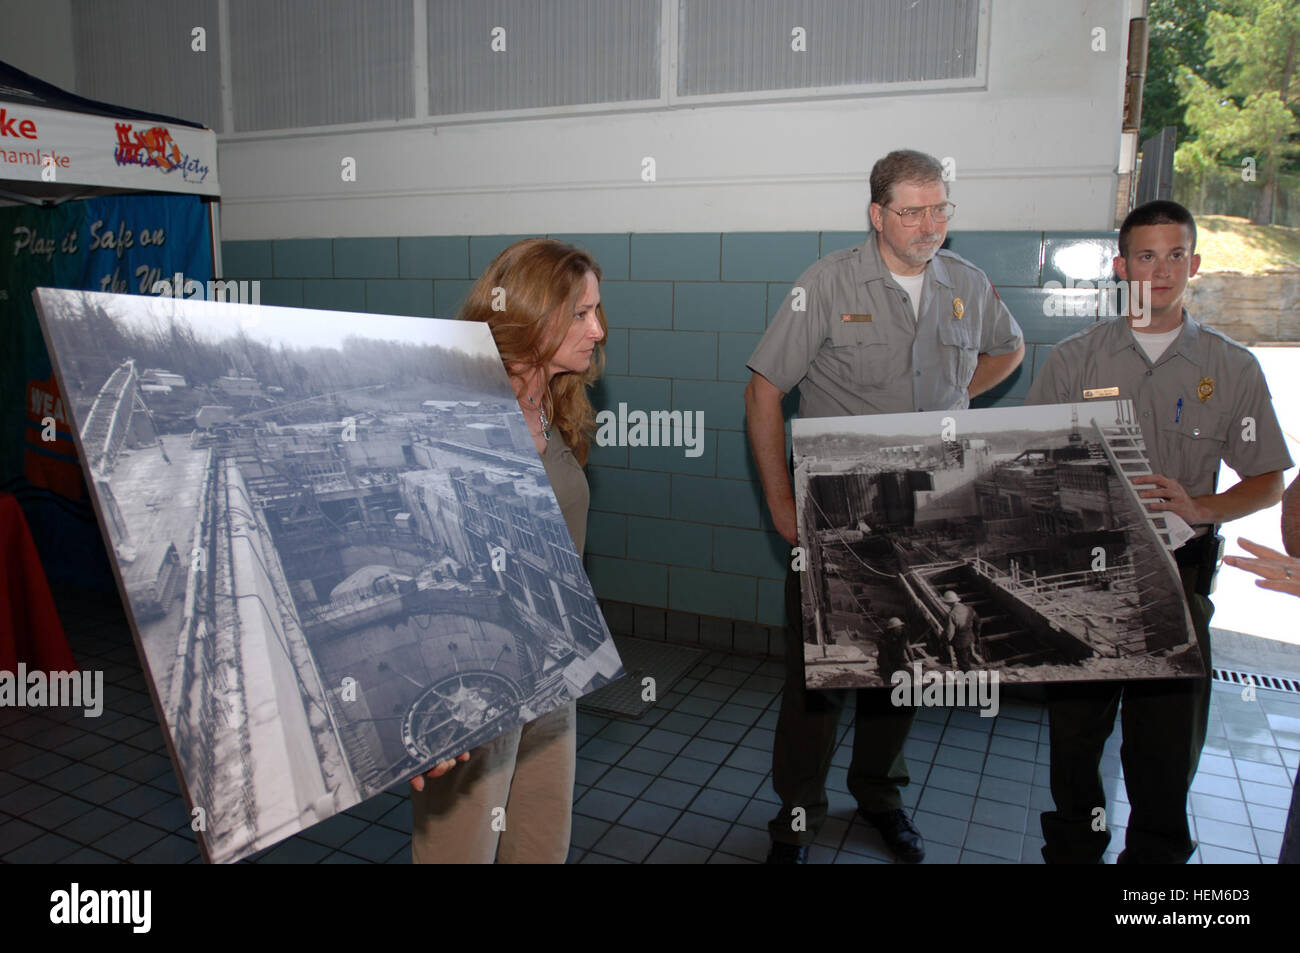 U.S. Army Corps of Engineers Nashville District Cheatham Lake personnel hold historical photos for a tour group - Stock Image